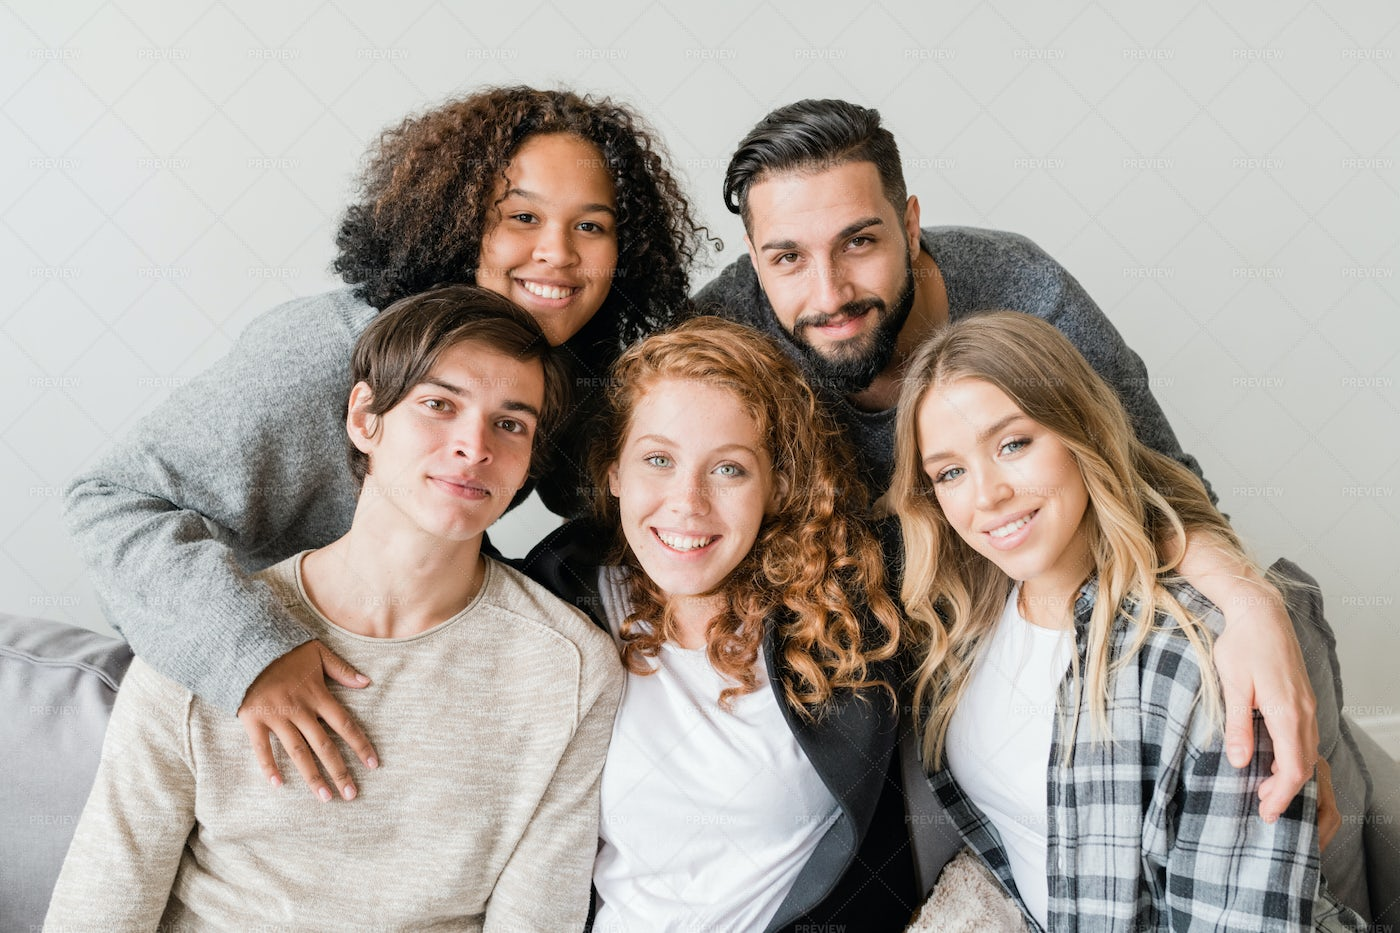 Young Affectionate Smiling Friends...: Stock Photos